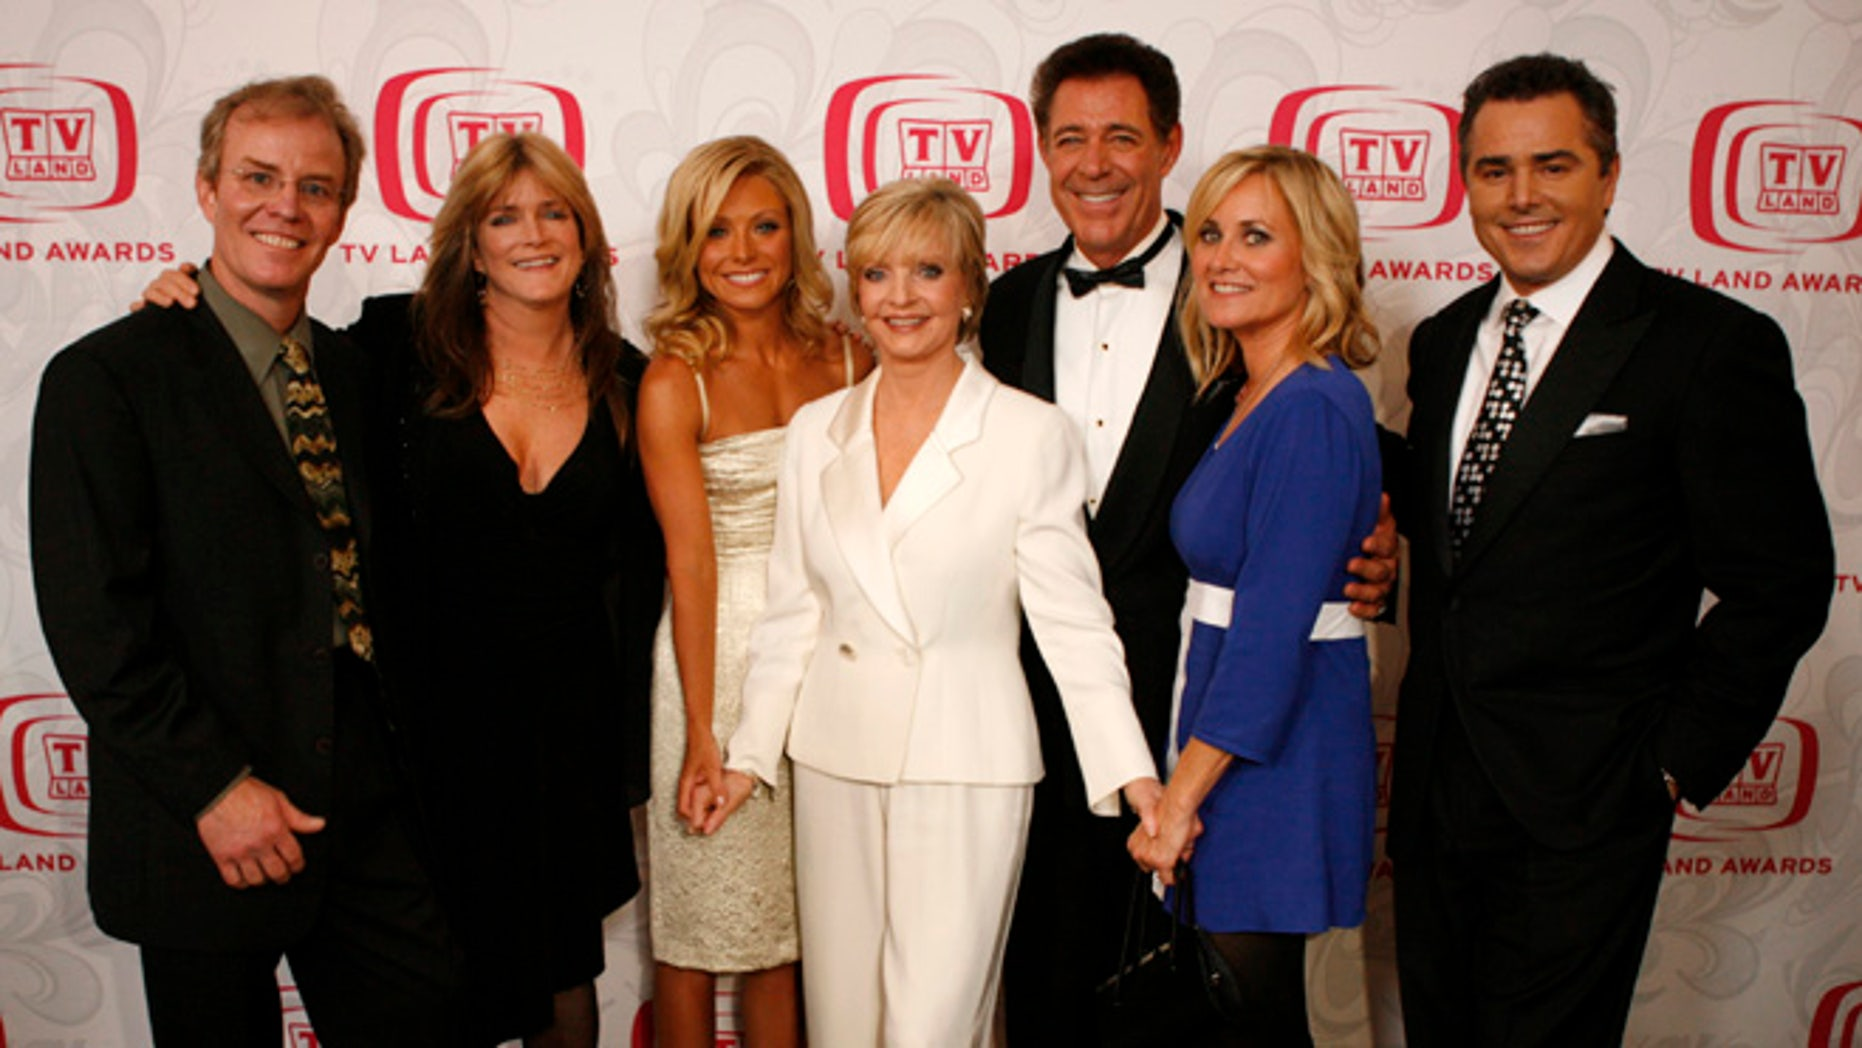 Barry Williams (fifth from left) remembers his TV mom Florence Henderson who passed away.